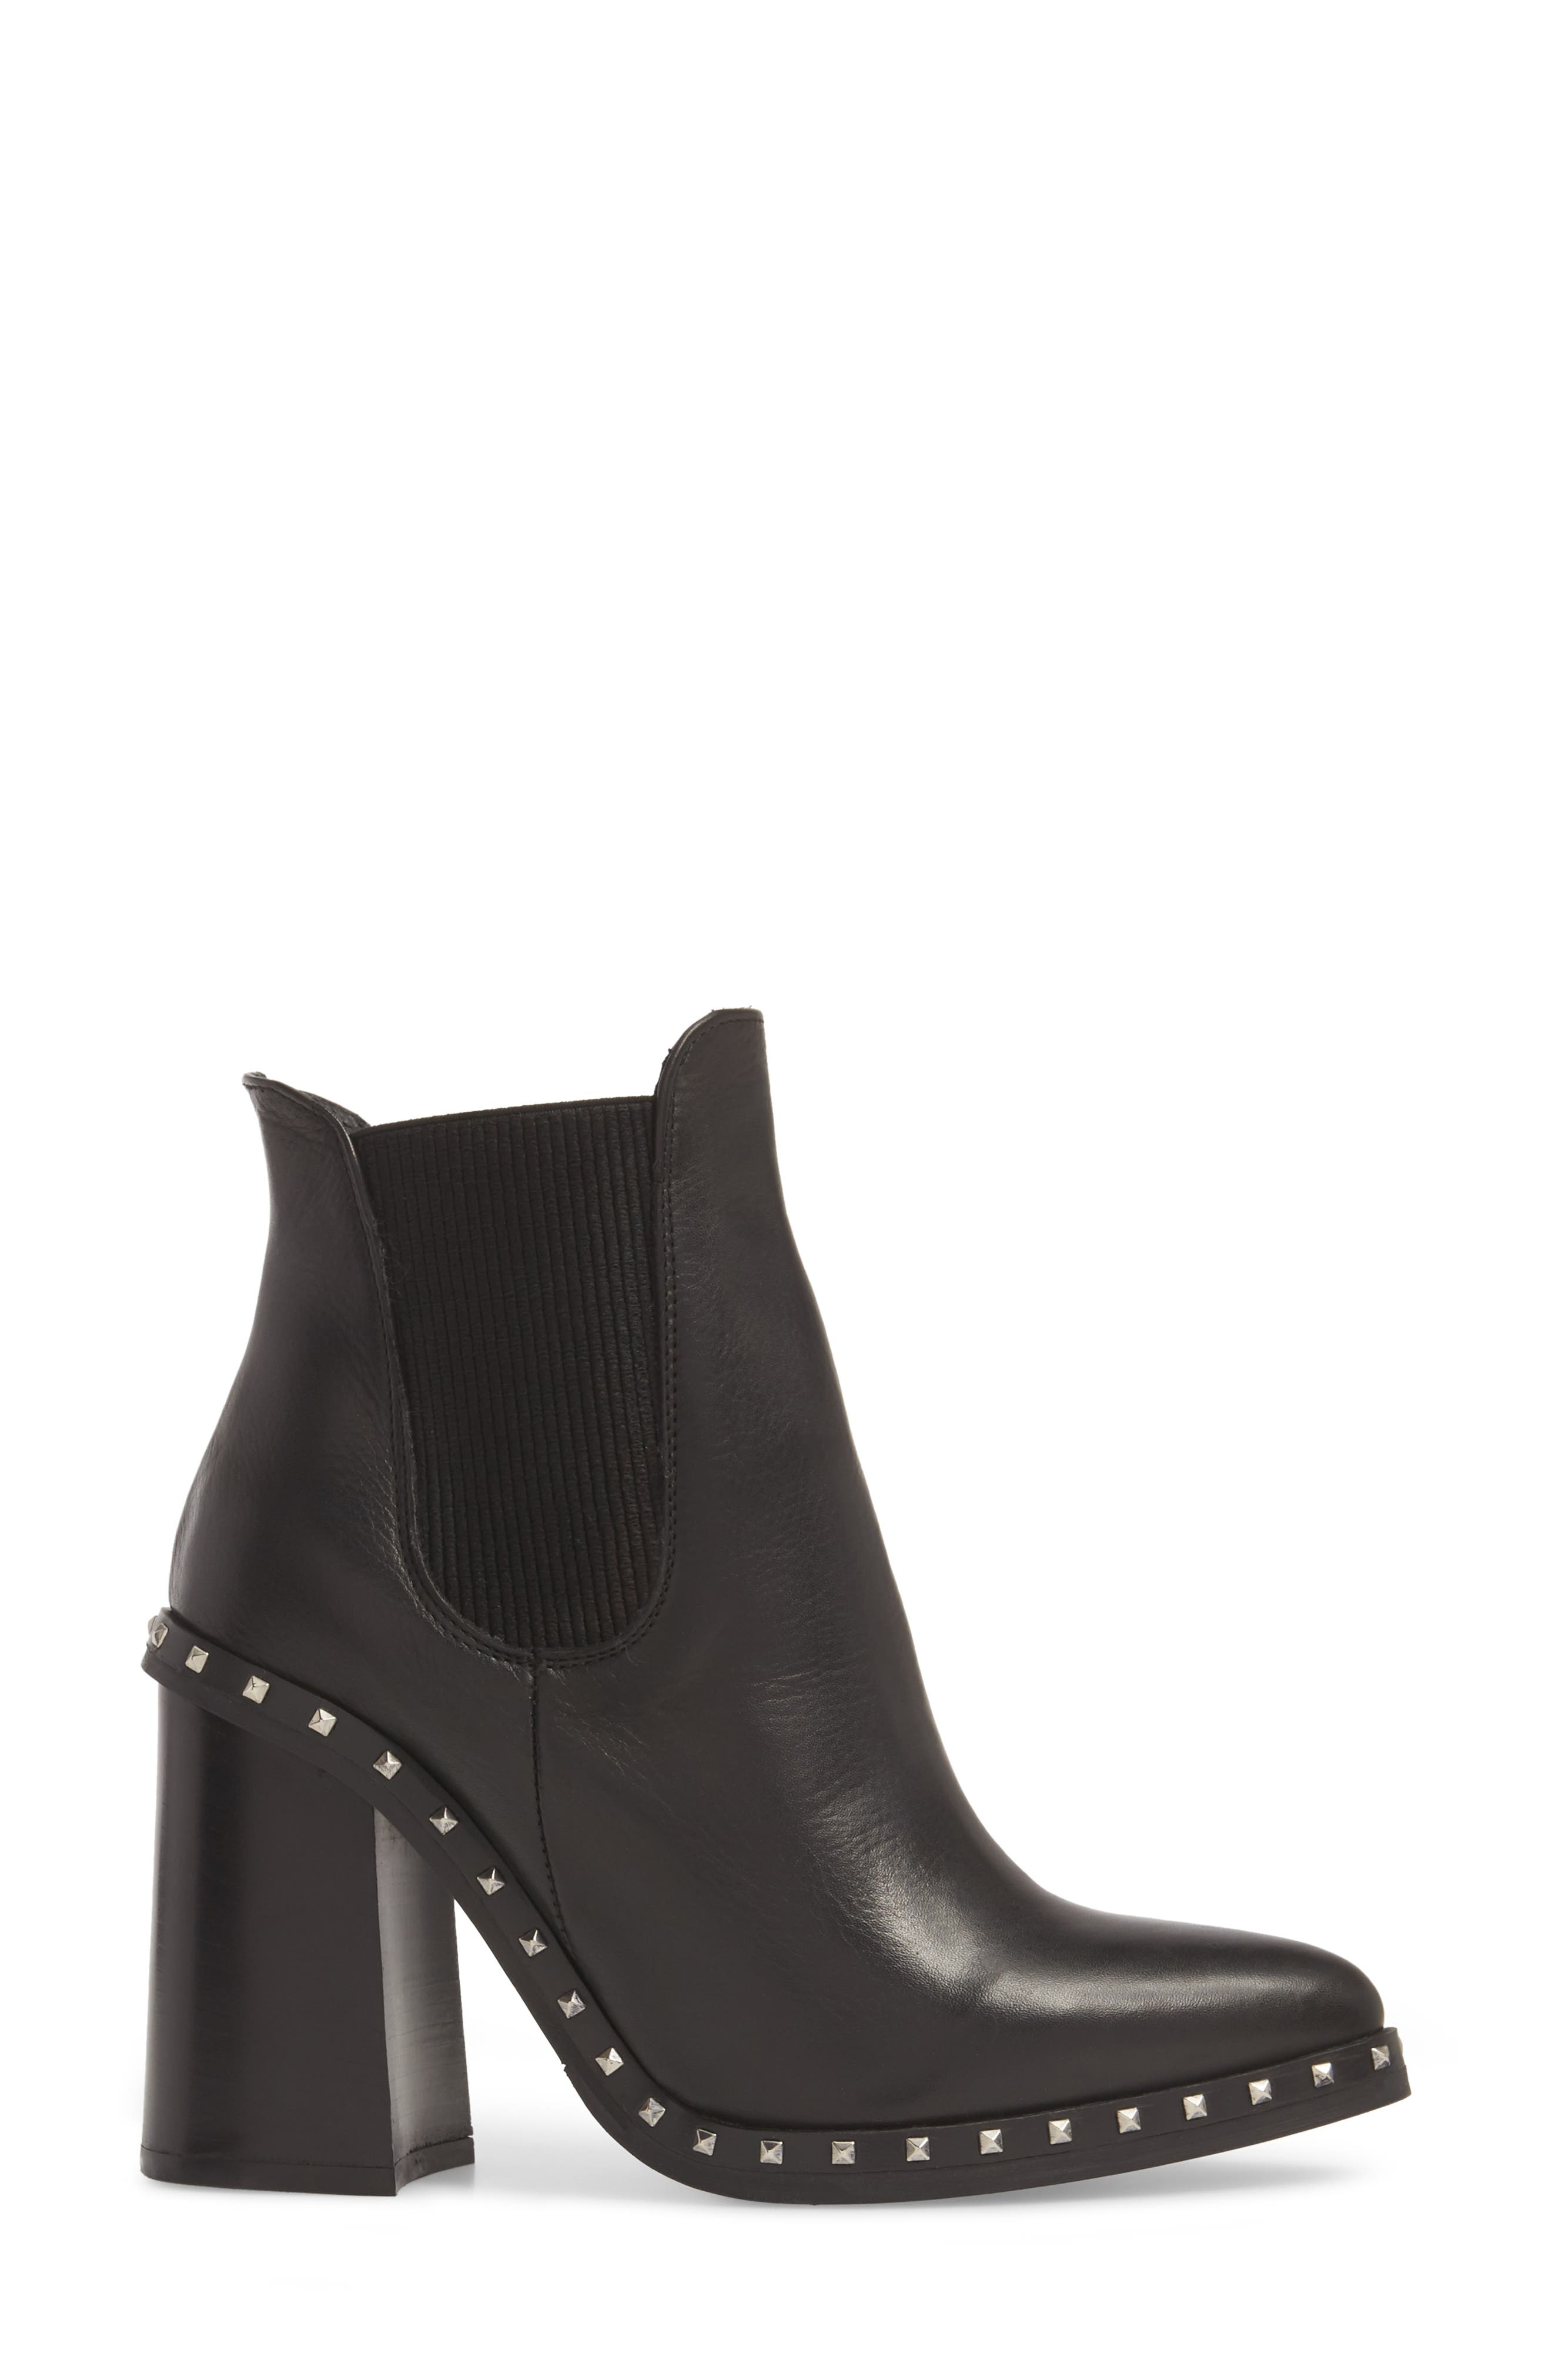 Scandal Studded Chelsea Bootie,                             Alternate thumbnail 3, color,                             BLACK LEATHER